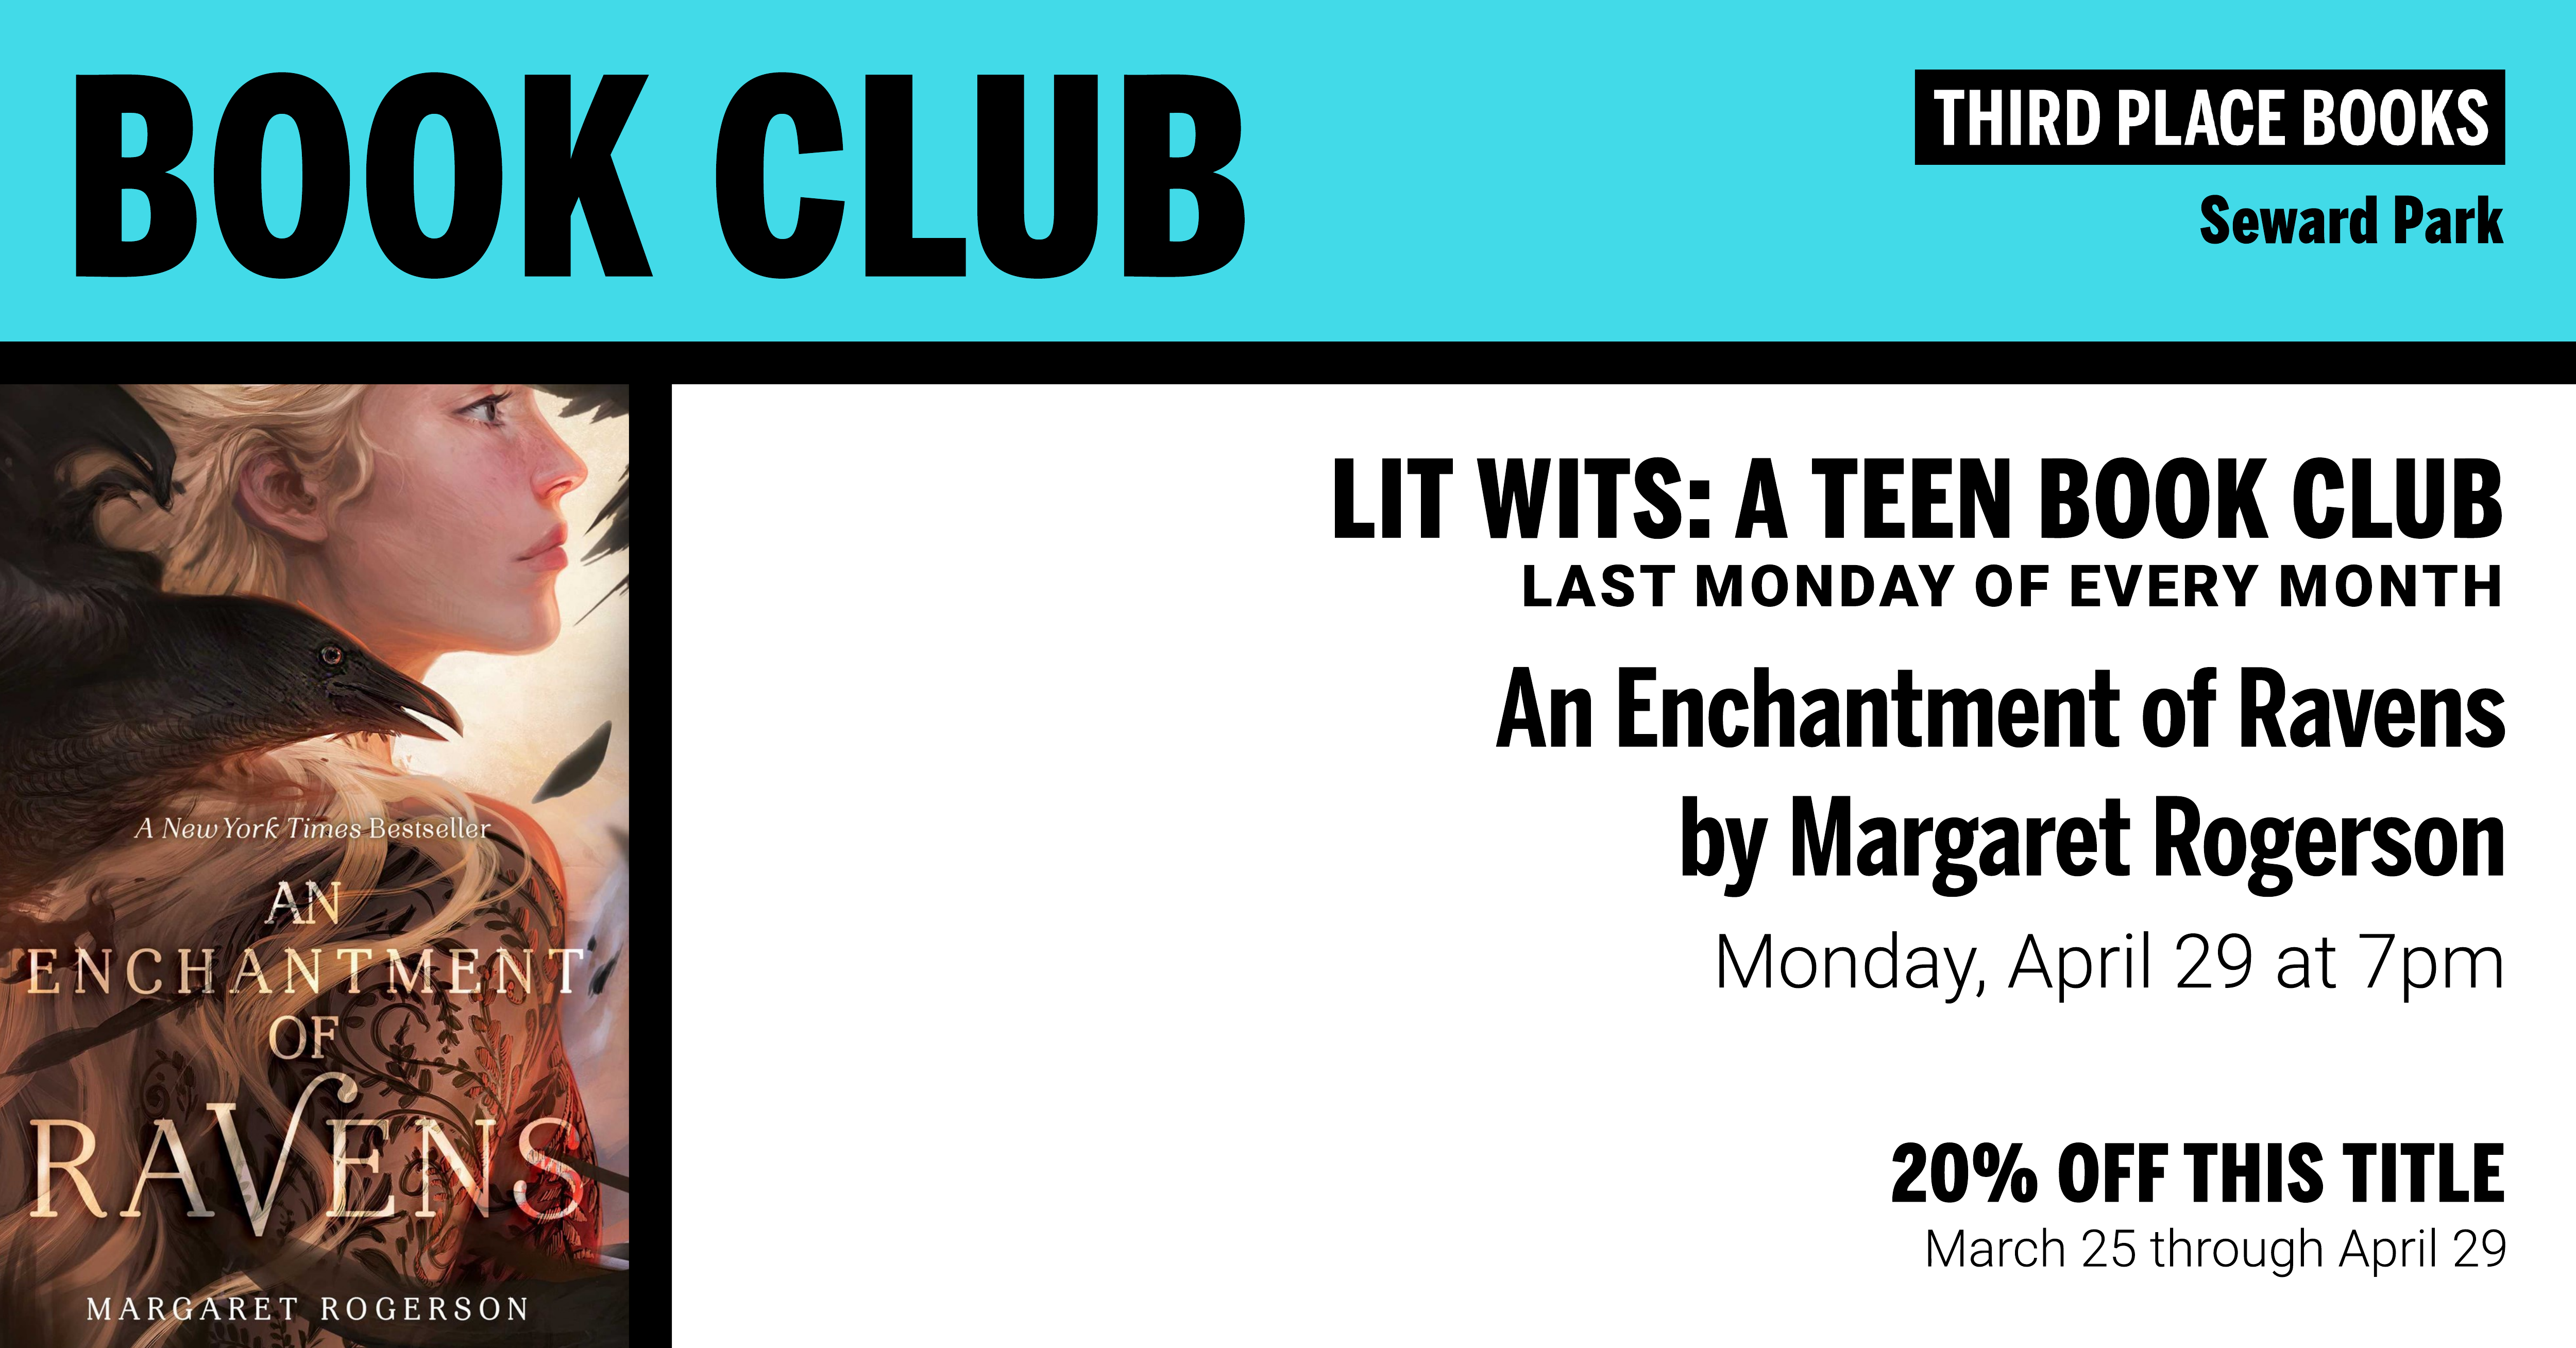 Lit Wits: A Teen Book Club discussing An Enchantment of Ravens by Margaret Rogerson on Monday, April 29th at 7pm